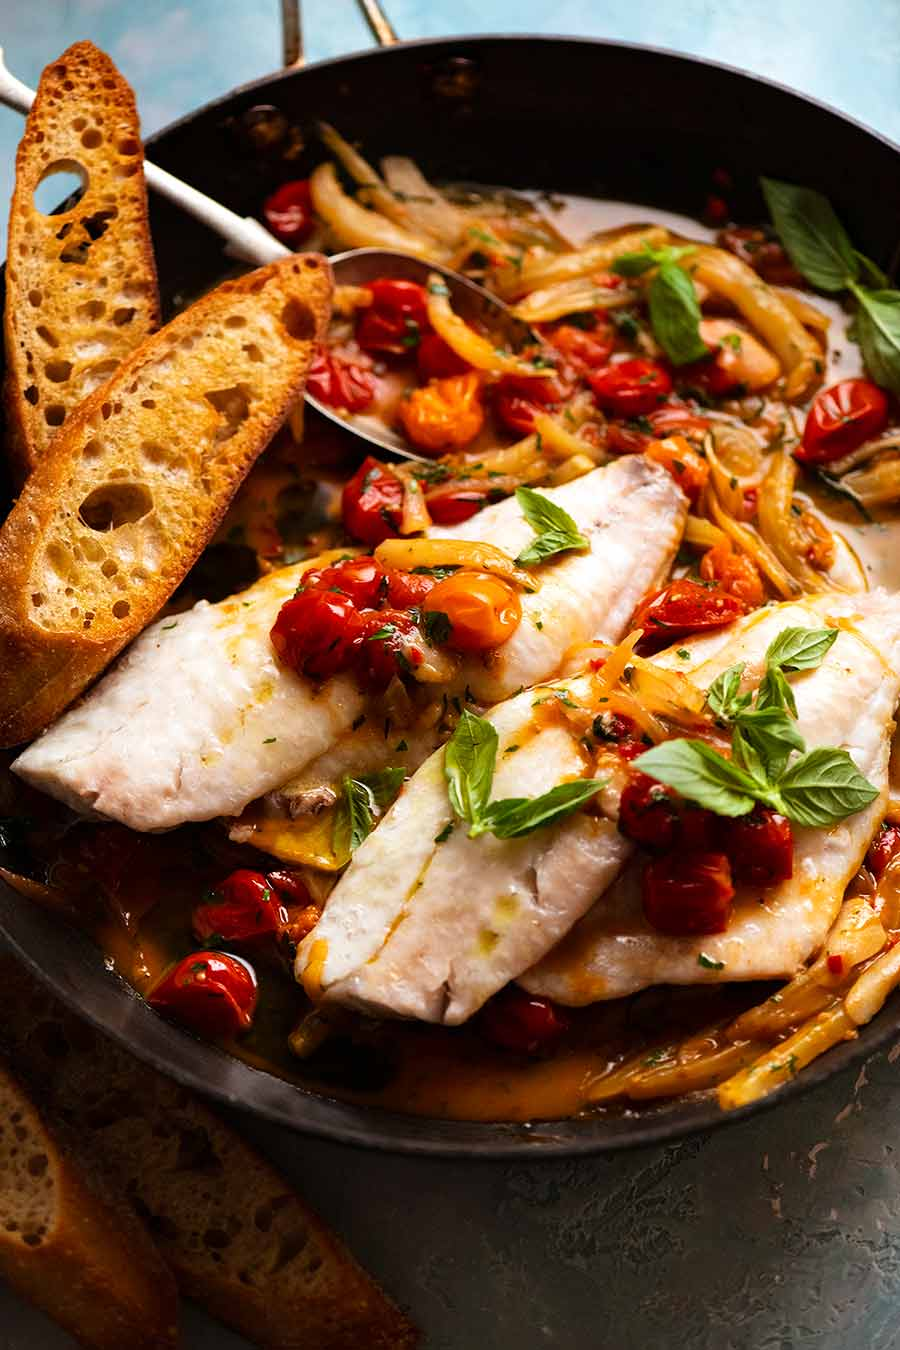 Acqua Pazza - Italian Poached Fish in a skillet, fresh off the stove